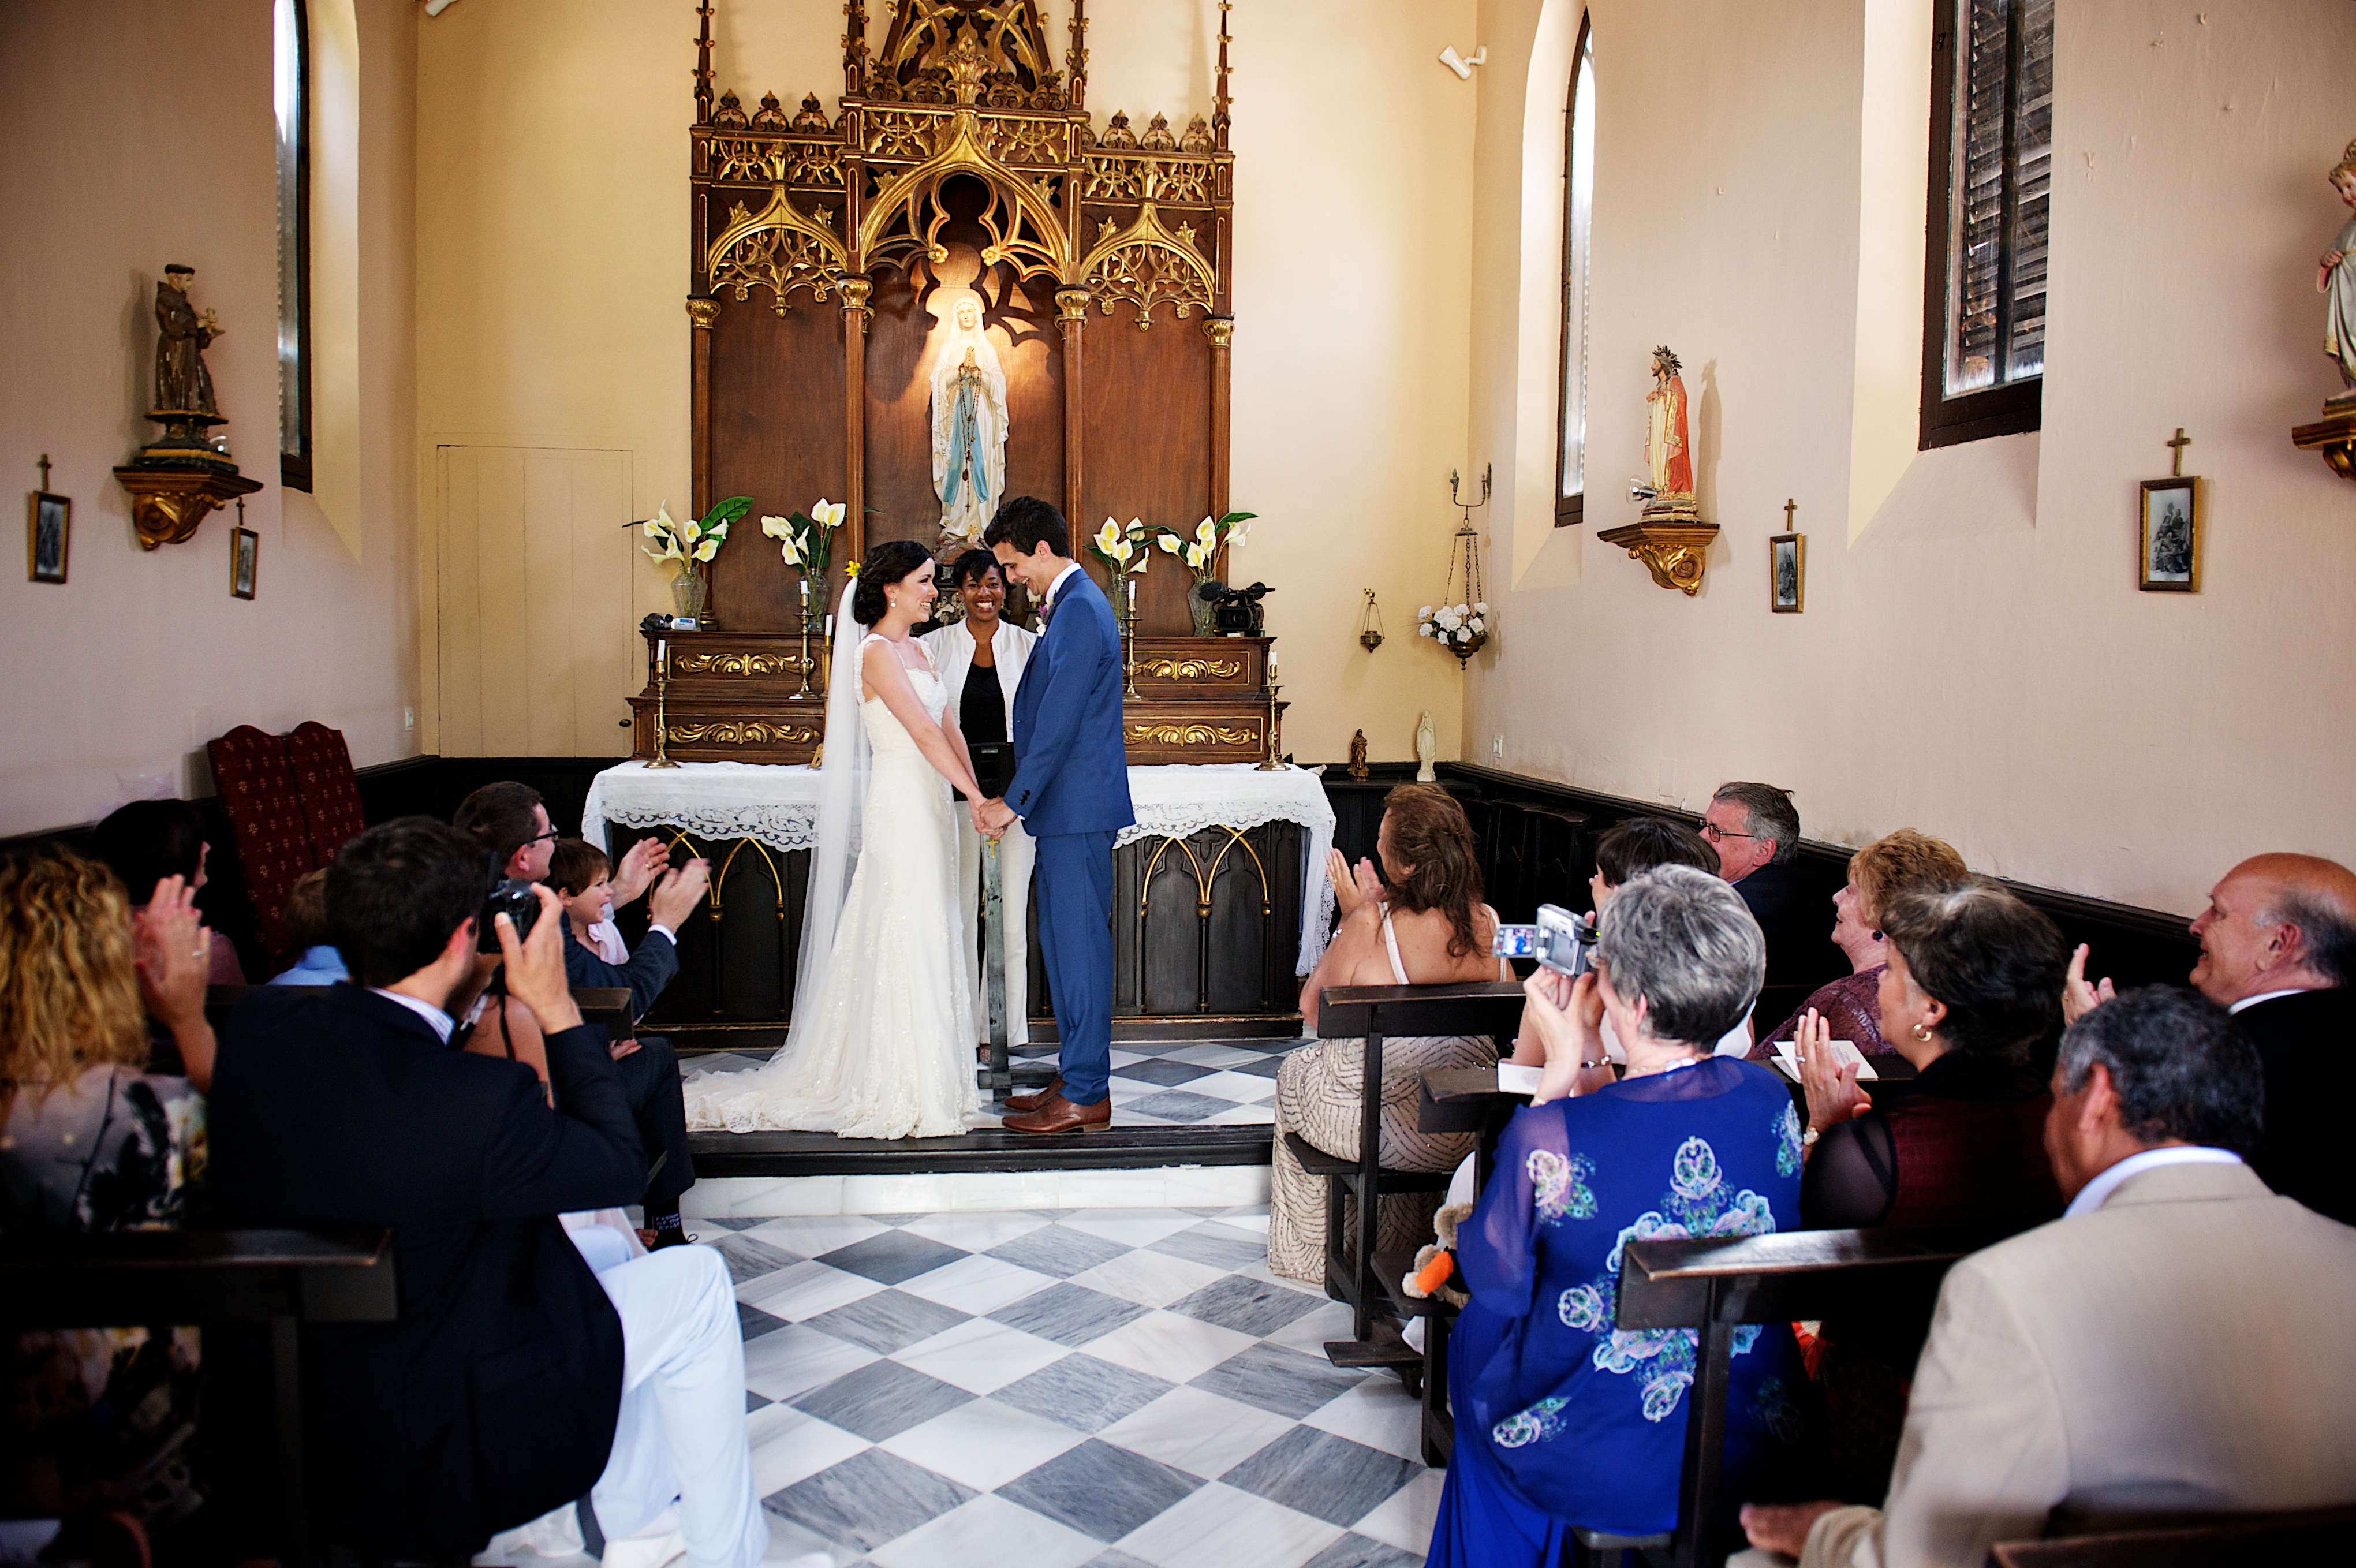 Wedding Ceremony Atheist Wedding Ceremony: A Guide To The Different Types Of Wedding Ceremonies